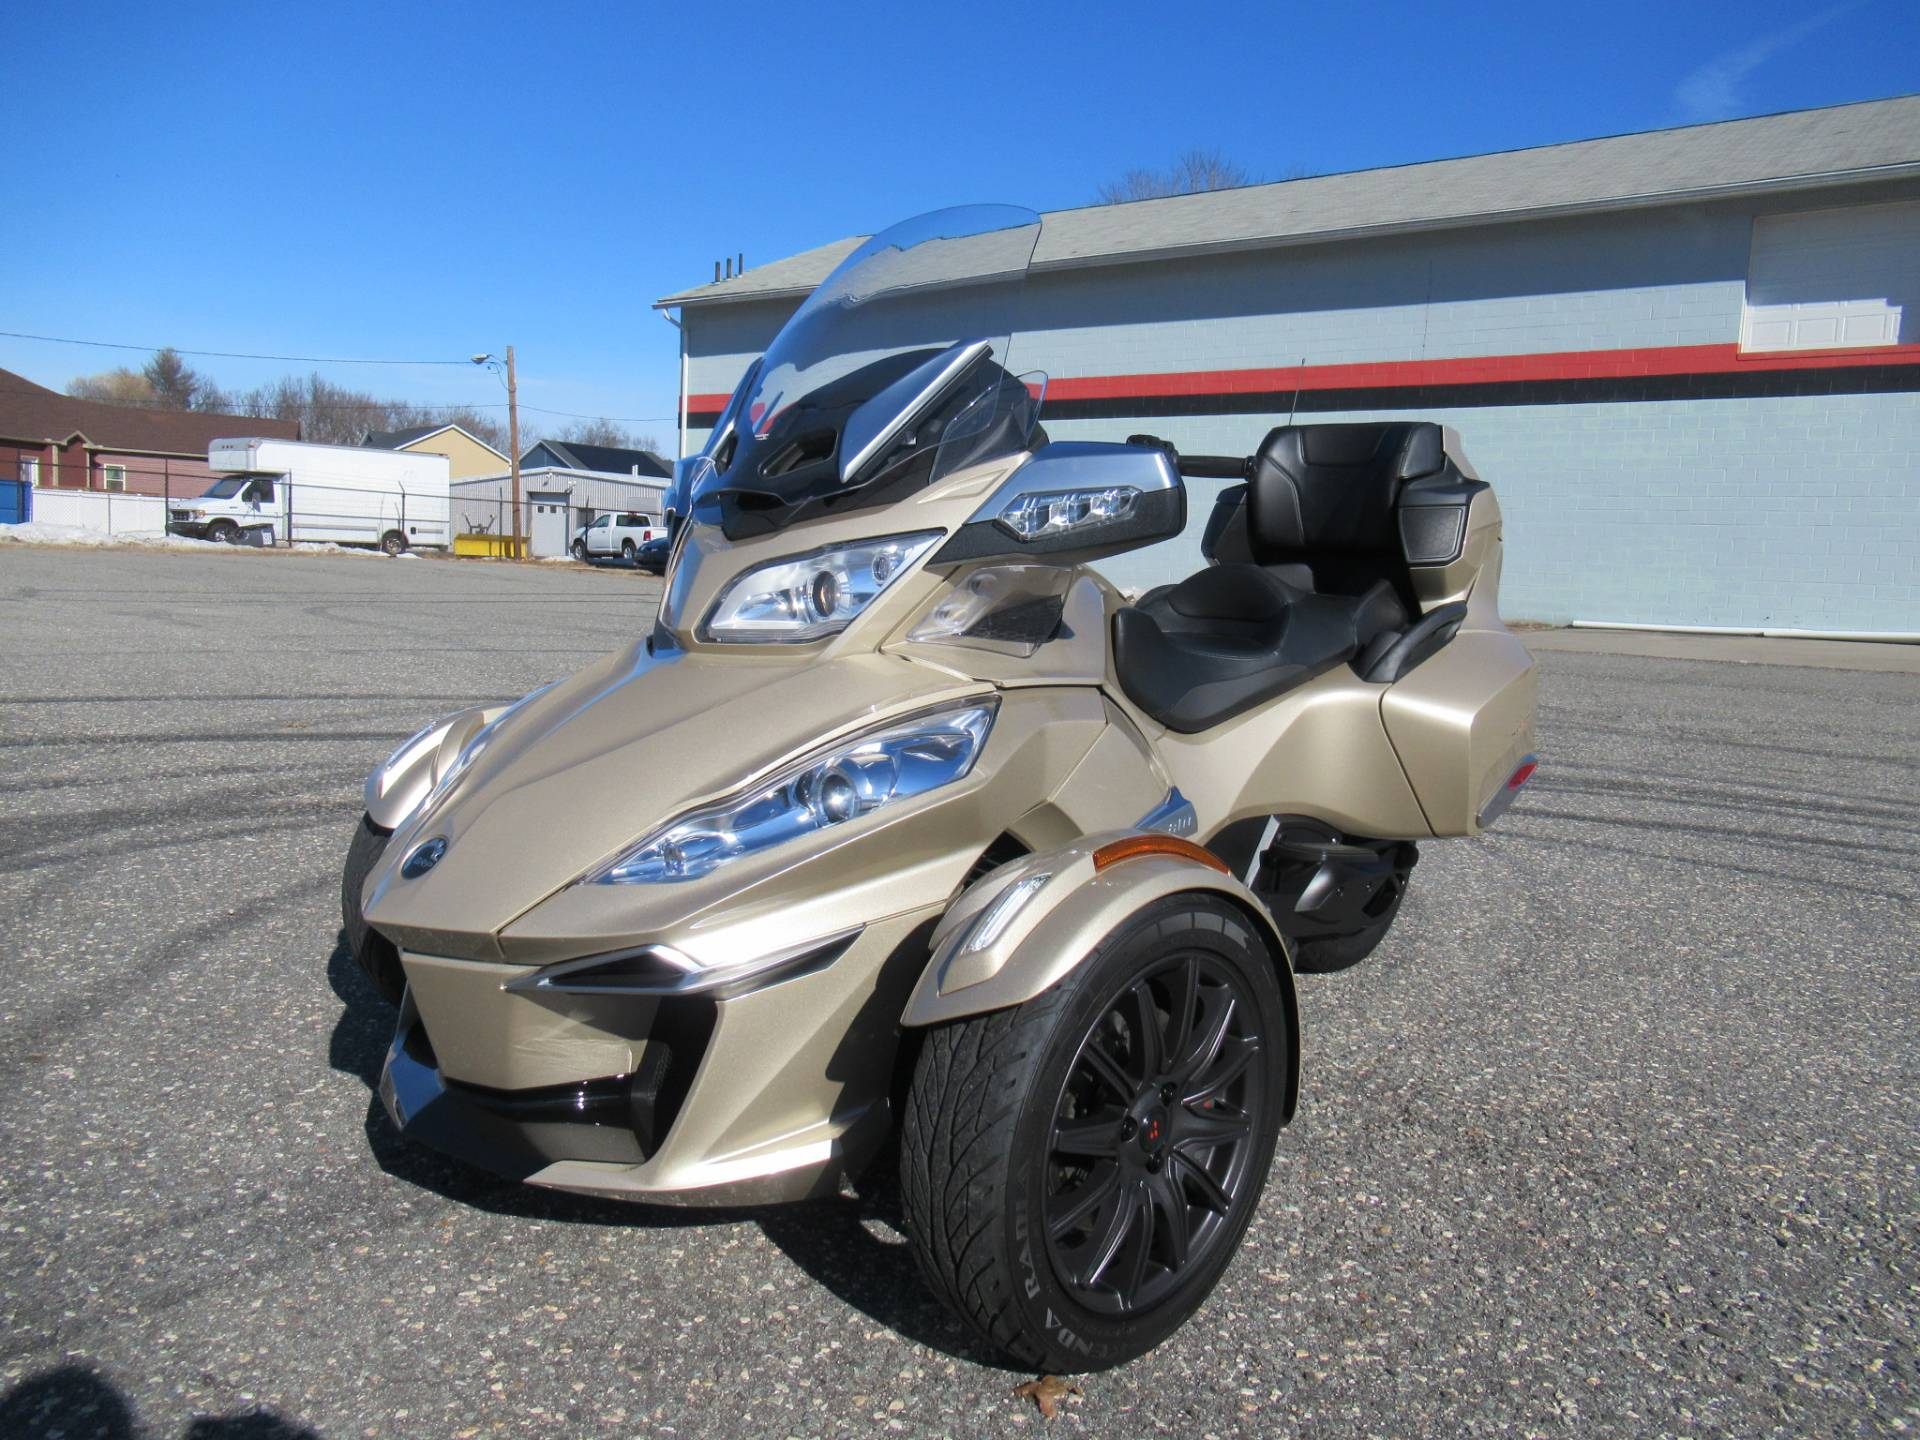 2017 Can-Am Spyder RT-S in Springfield, Massachusetts - Photo 7